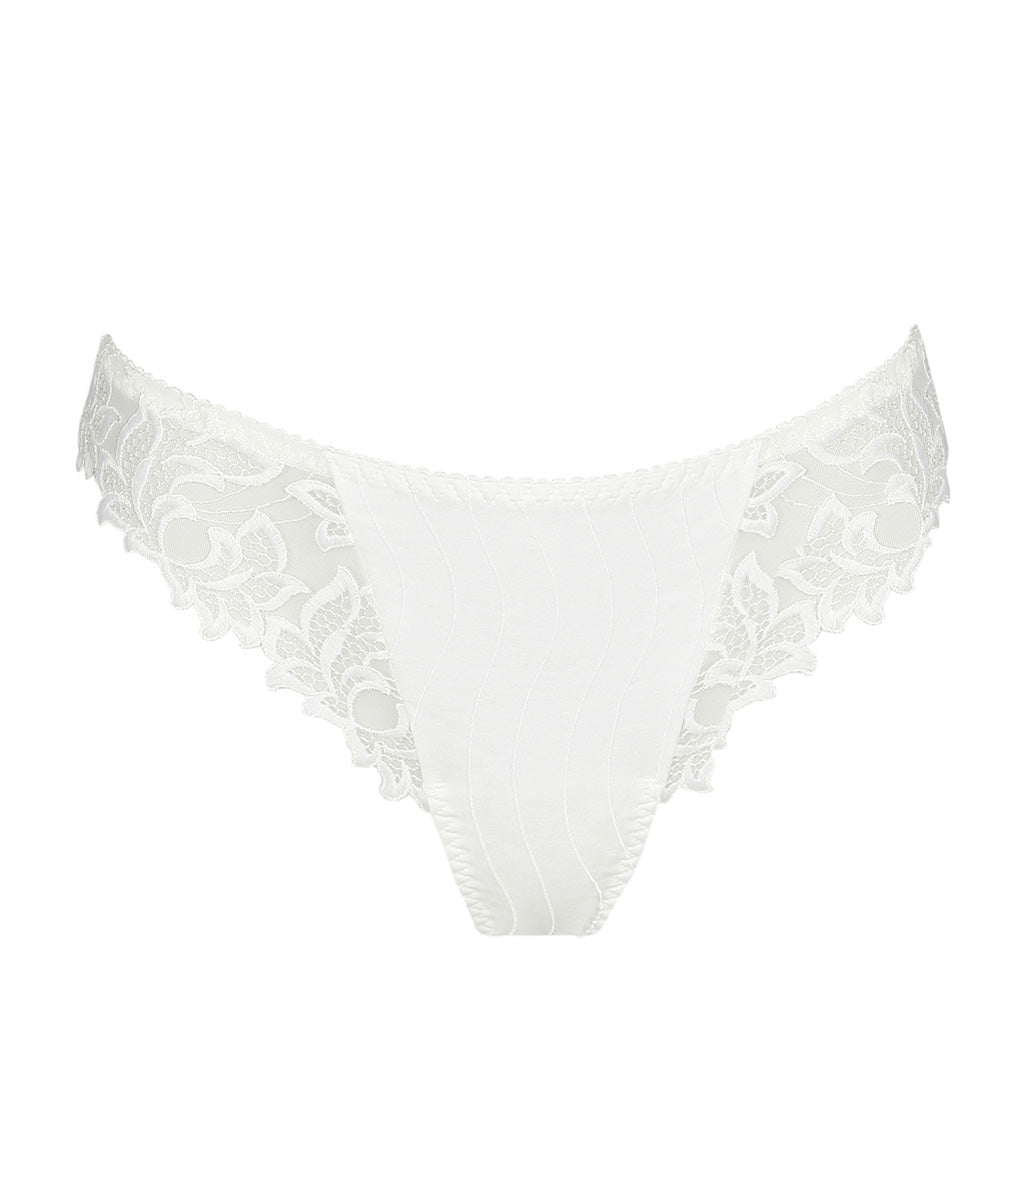 PrimaDonna 'Deauville' (Natural) Thong - Sandra Dee - Product Shot - Front